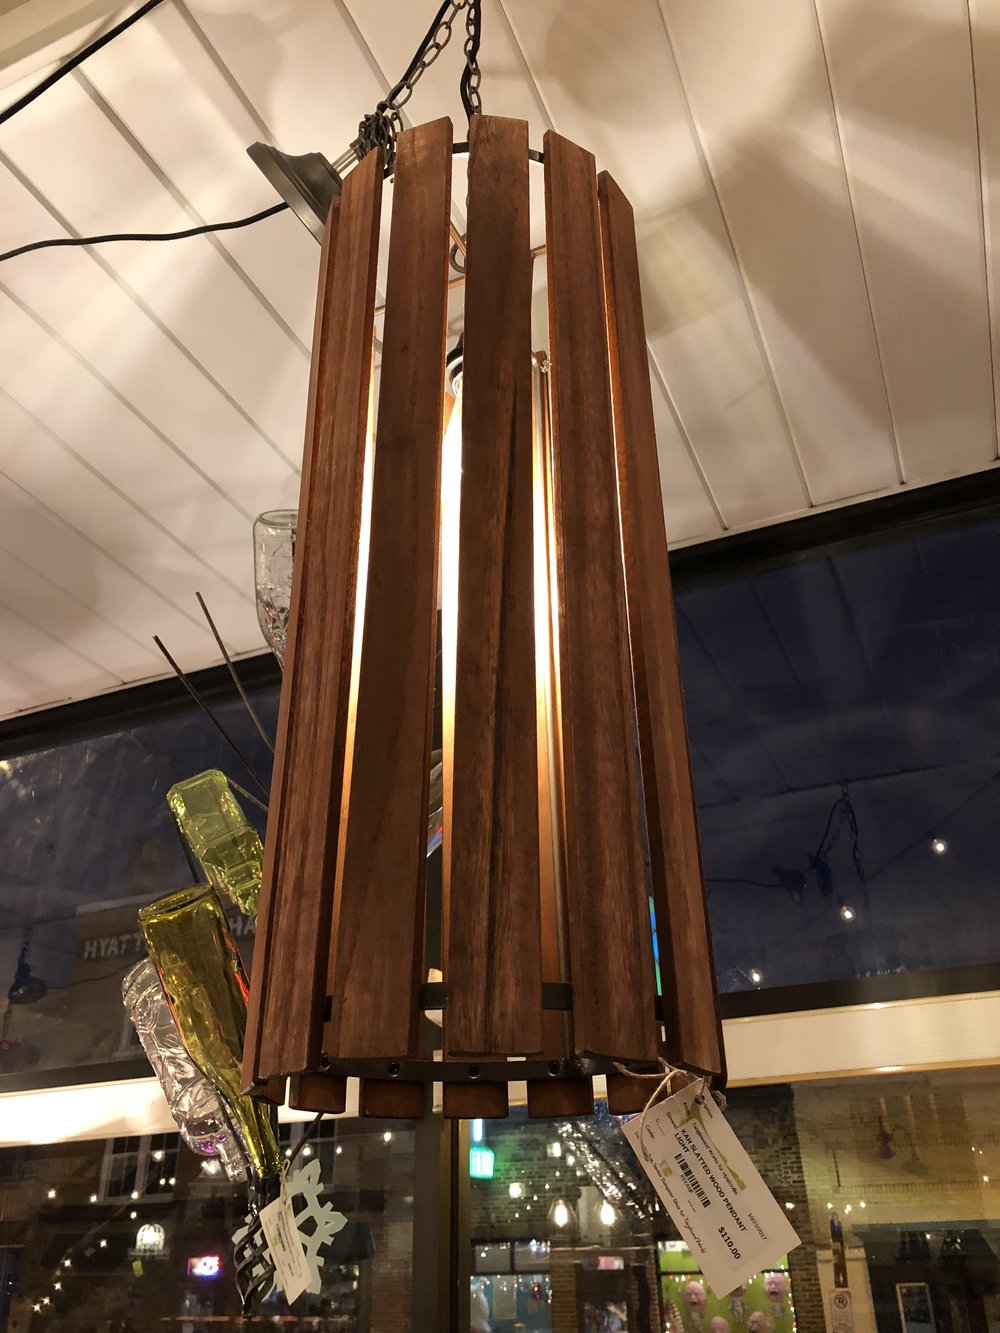 Tanglewood Works - Wouldn't this look great in your hallway or above that holiday table? Head over to Tanglewood and grab it before we do! Kah slatted wood pendant light. $110